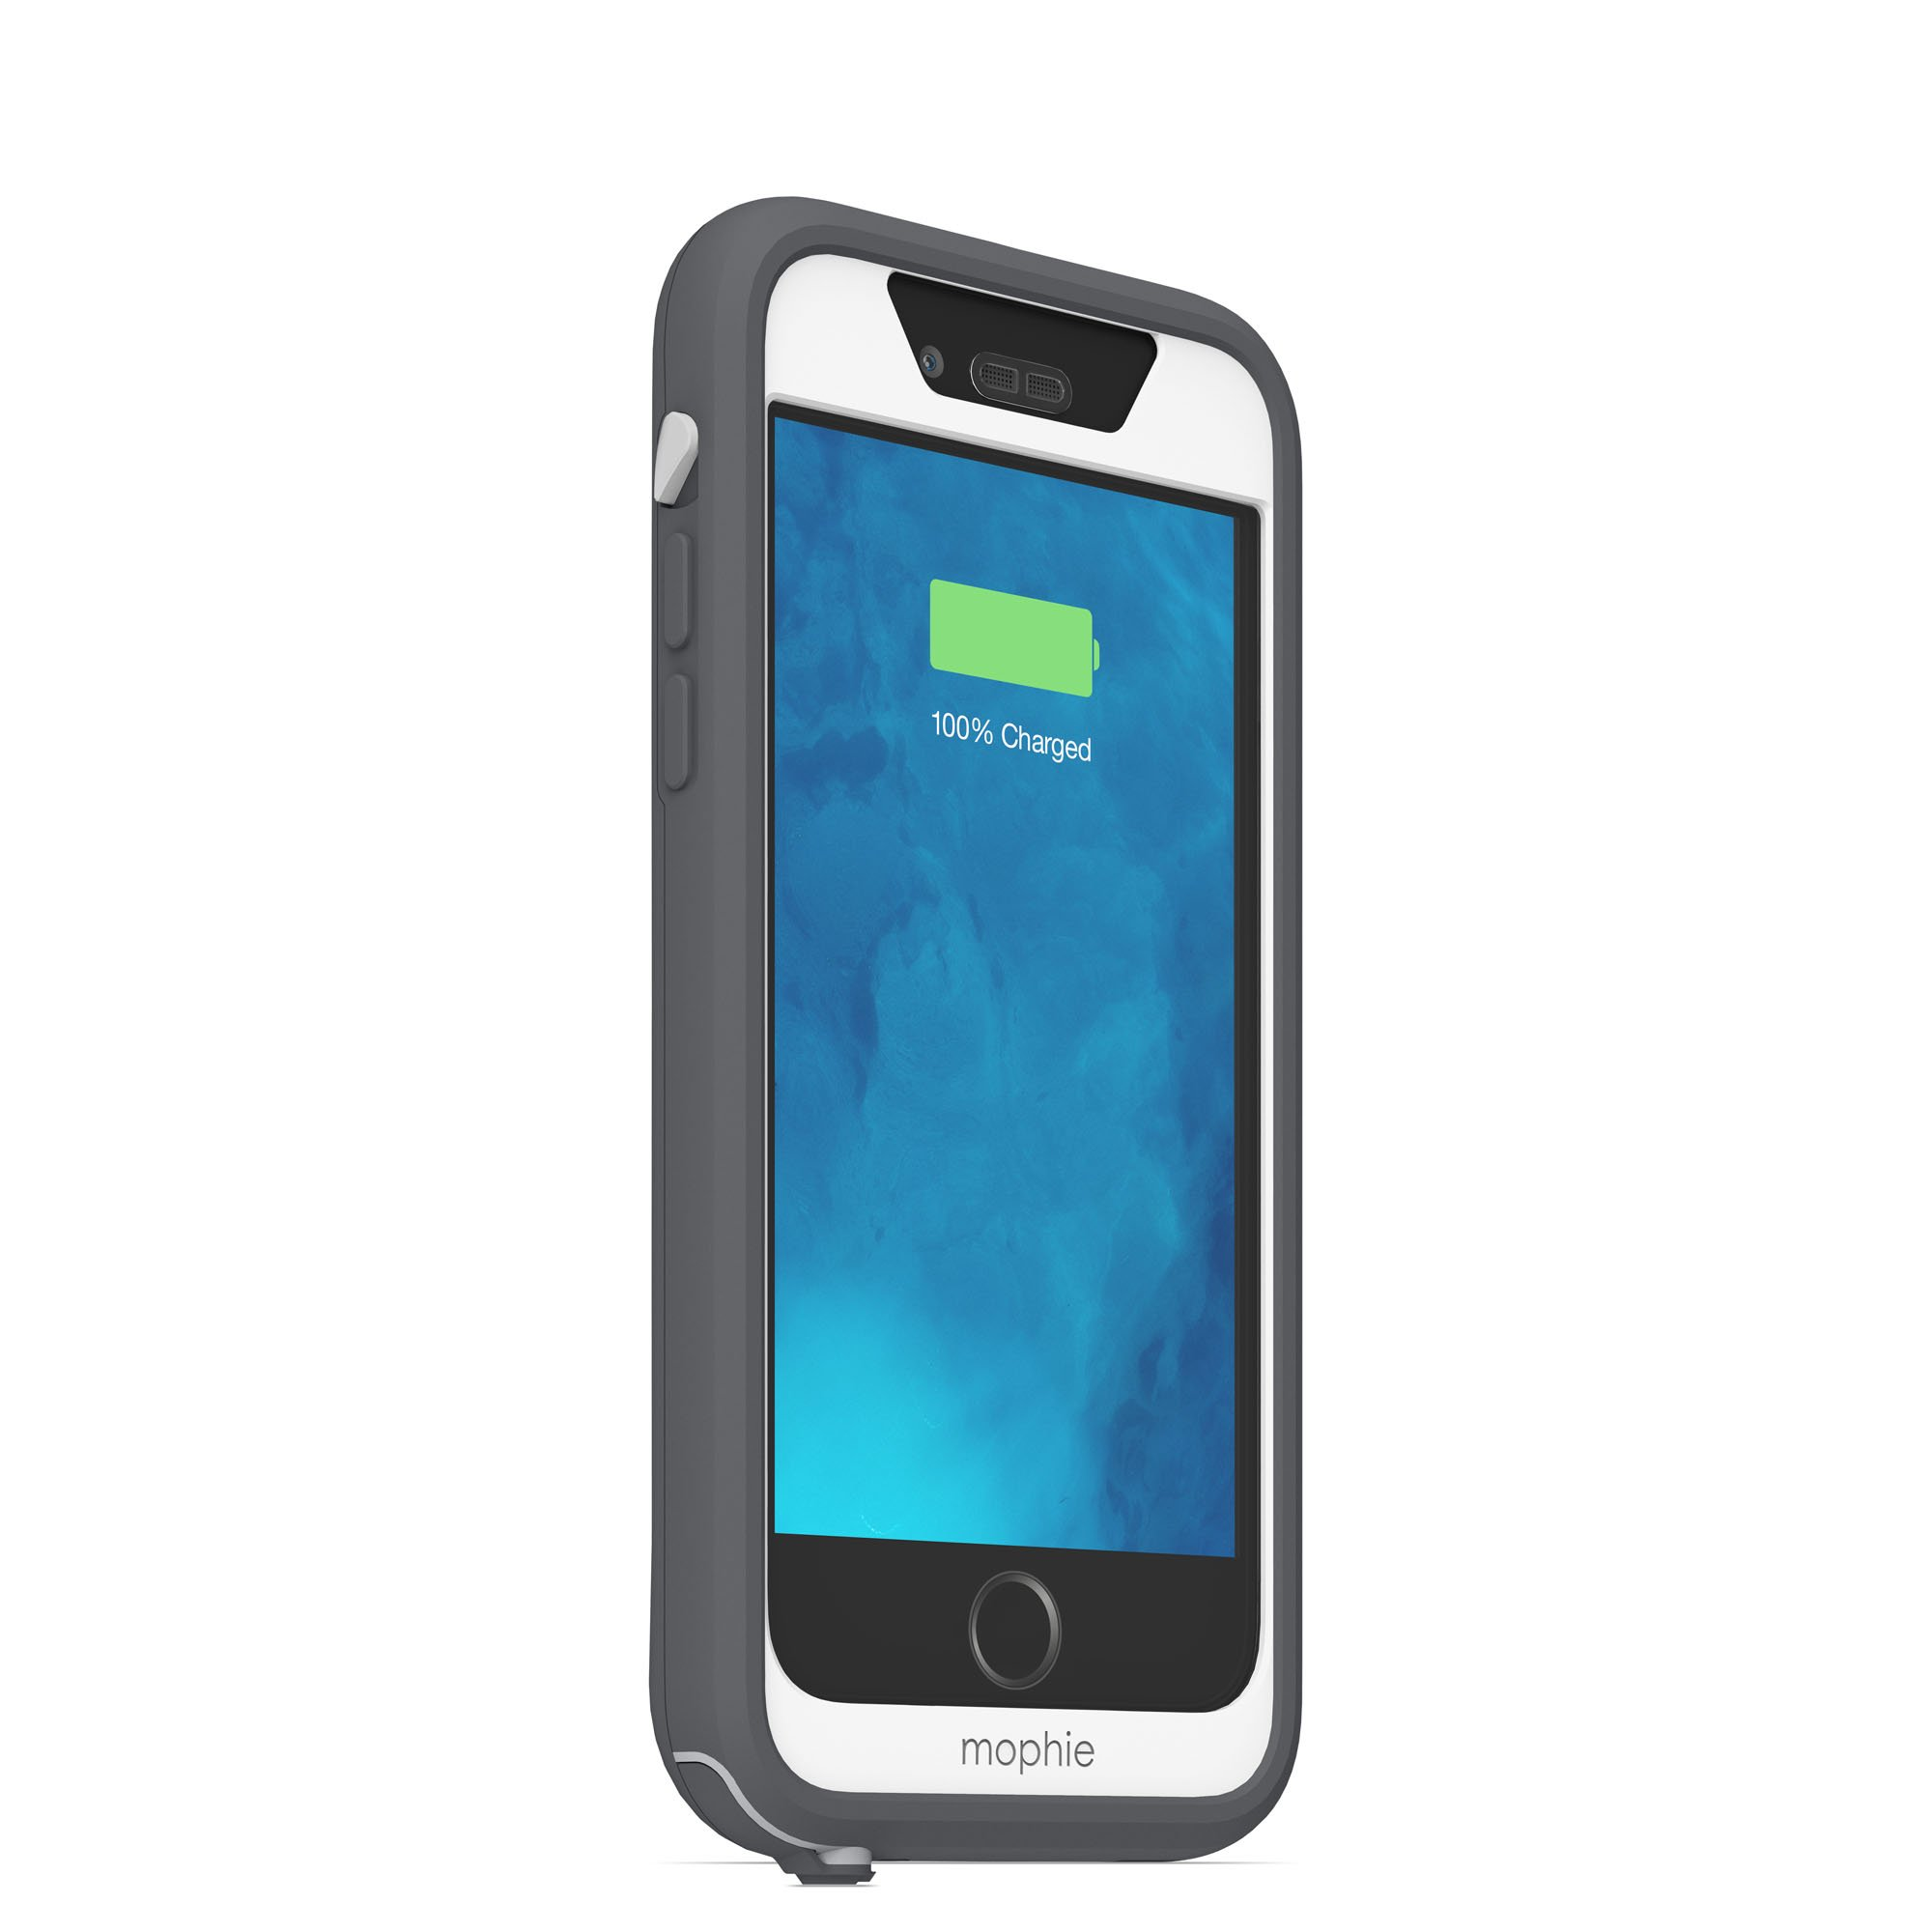 mophie juice pack H2PRO - Waterproof Mobile Protective Battery Pack Case for iPhone 6/6s - White by mophie (Image #6)